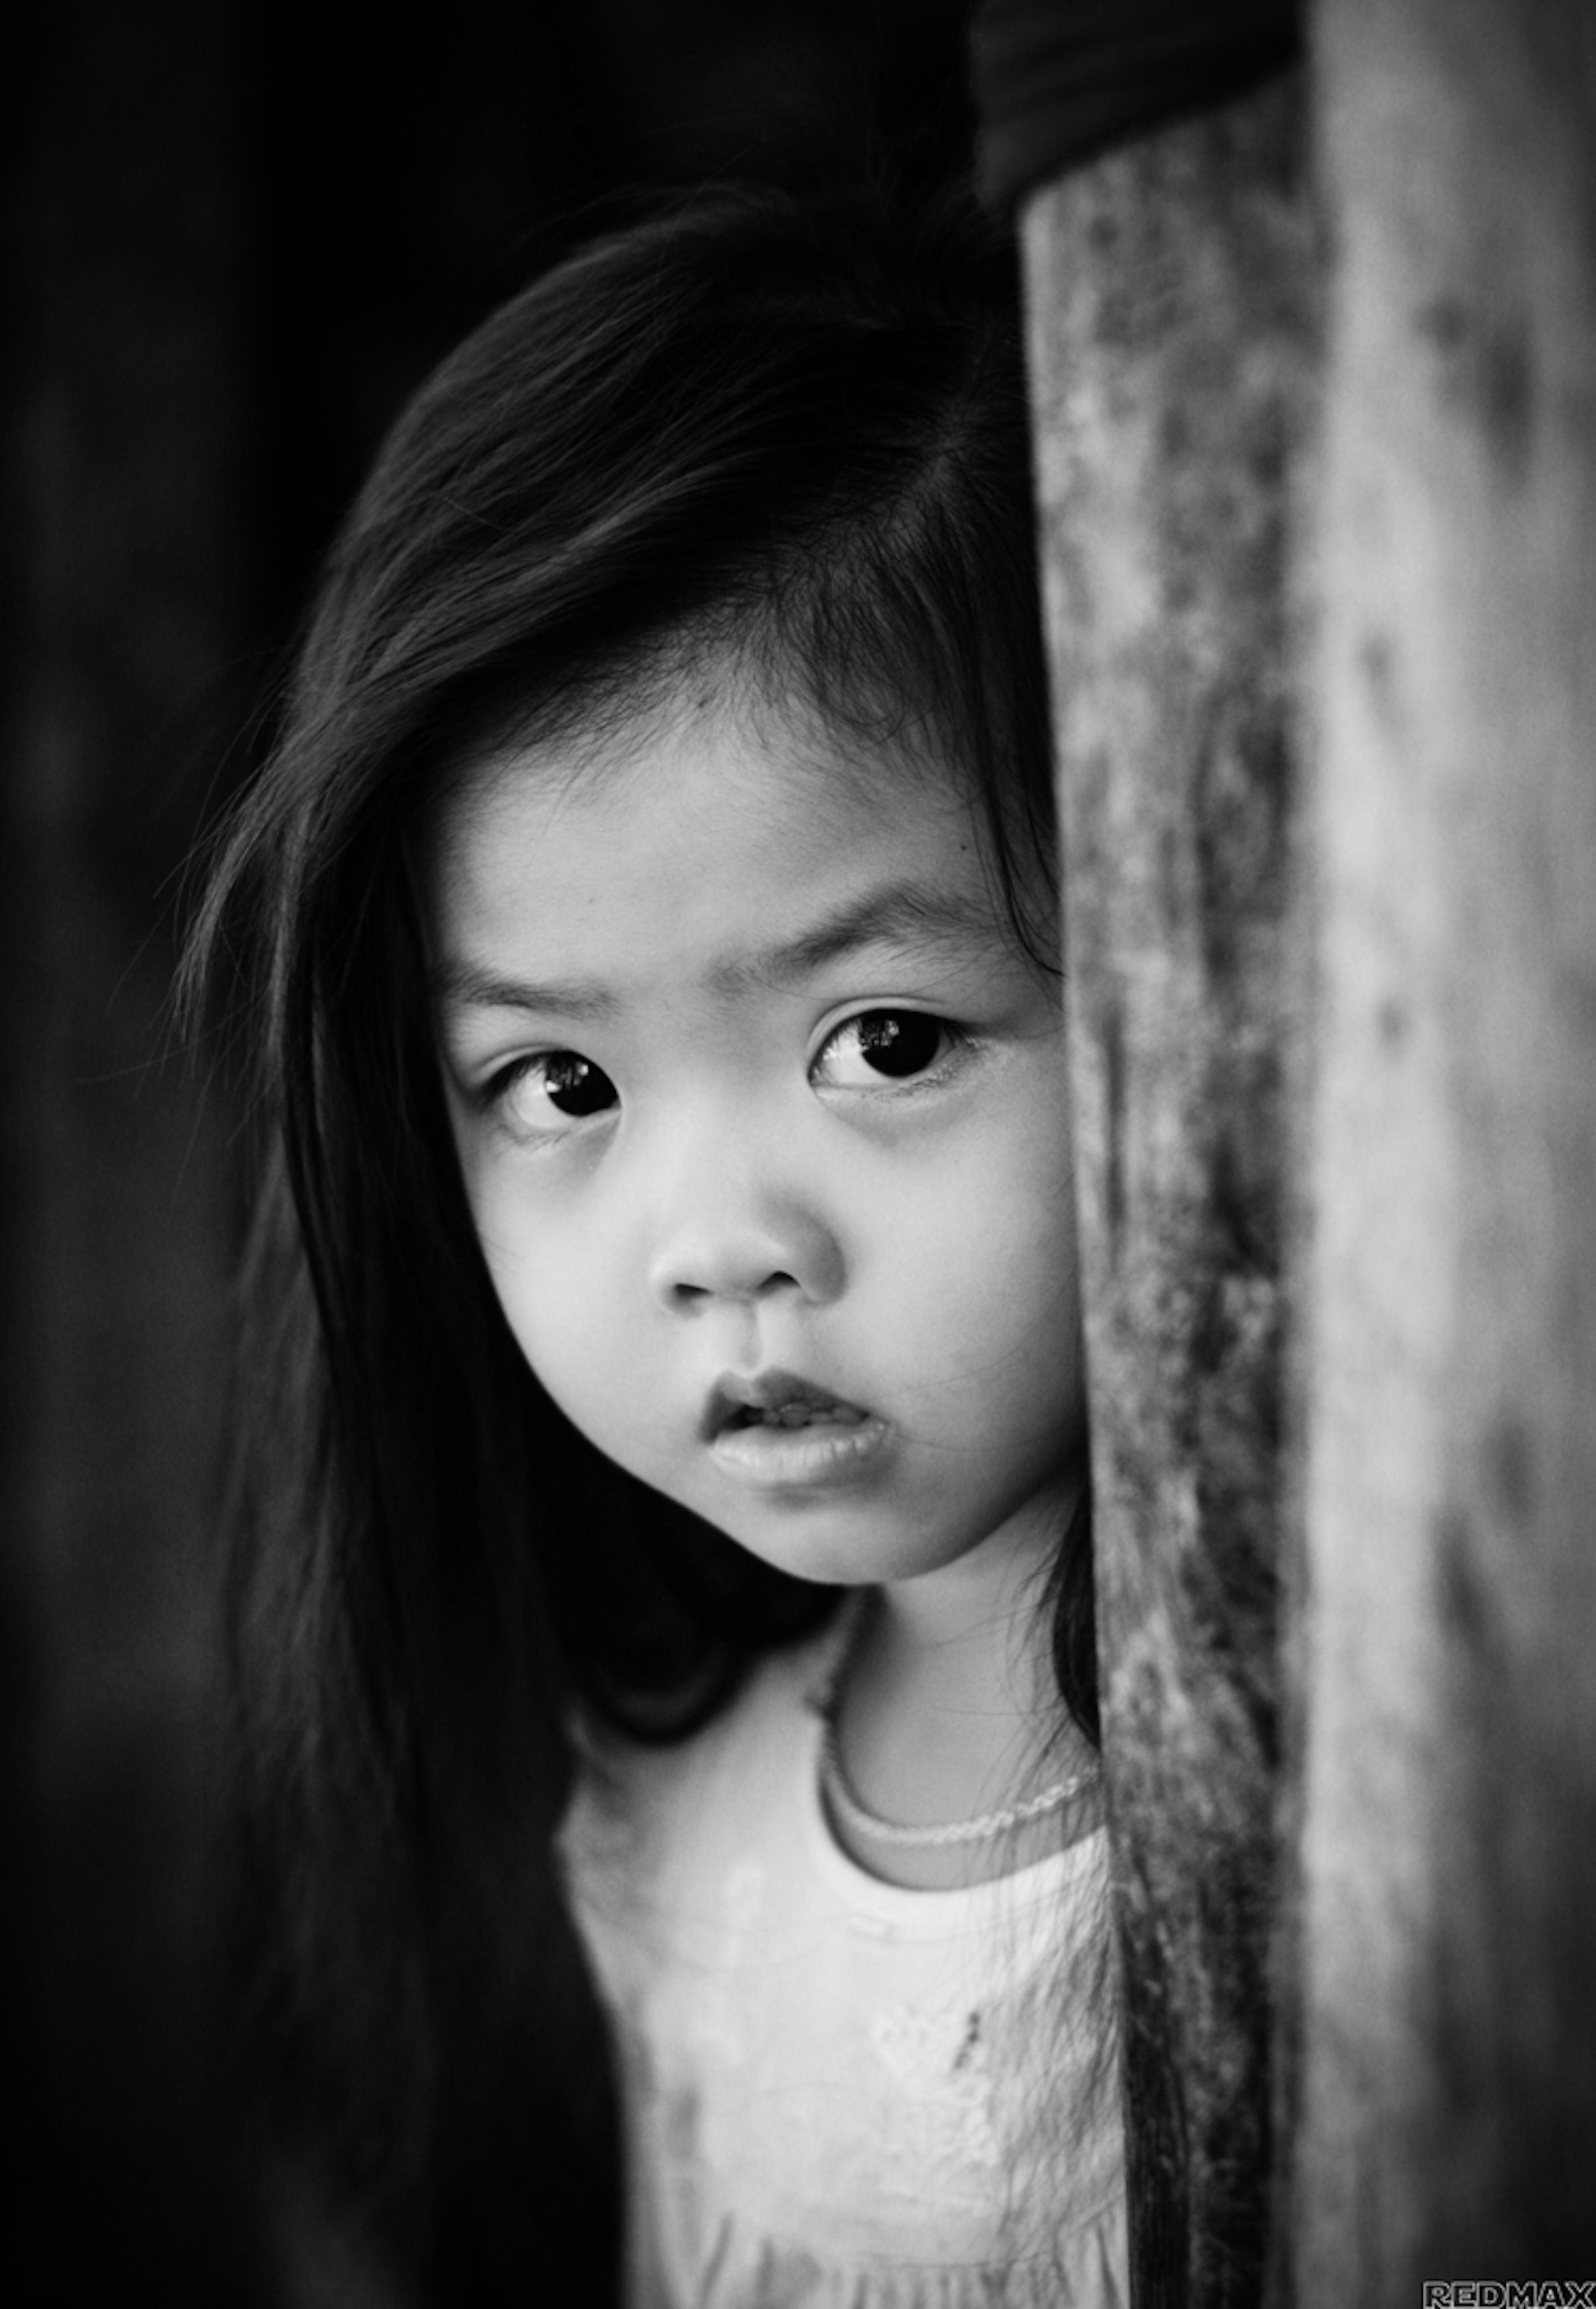 In the book, Hà is a little Vietnamese girl who has dark ...